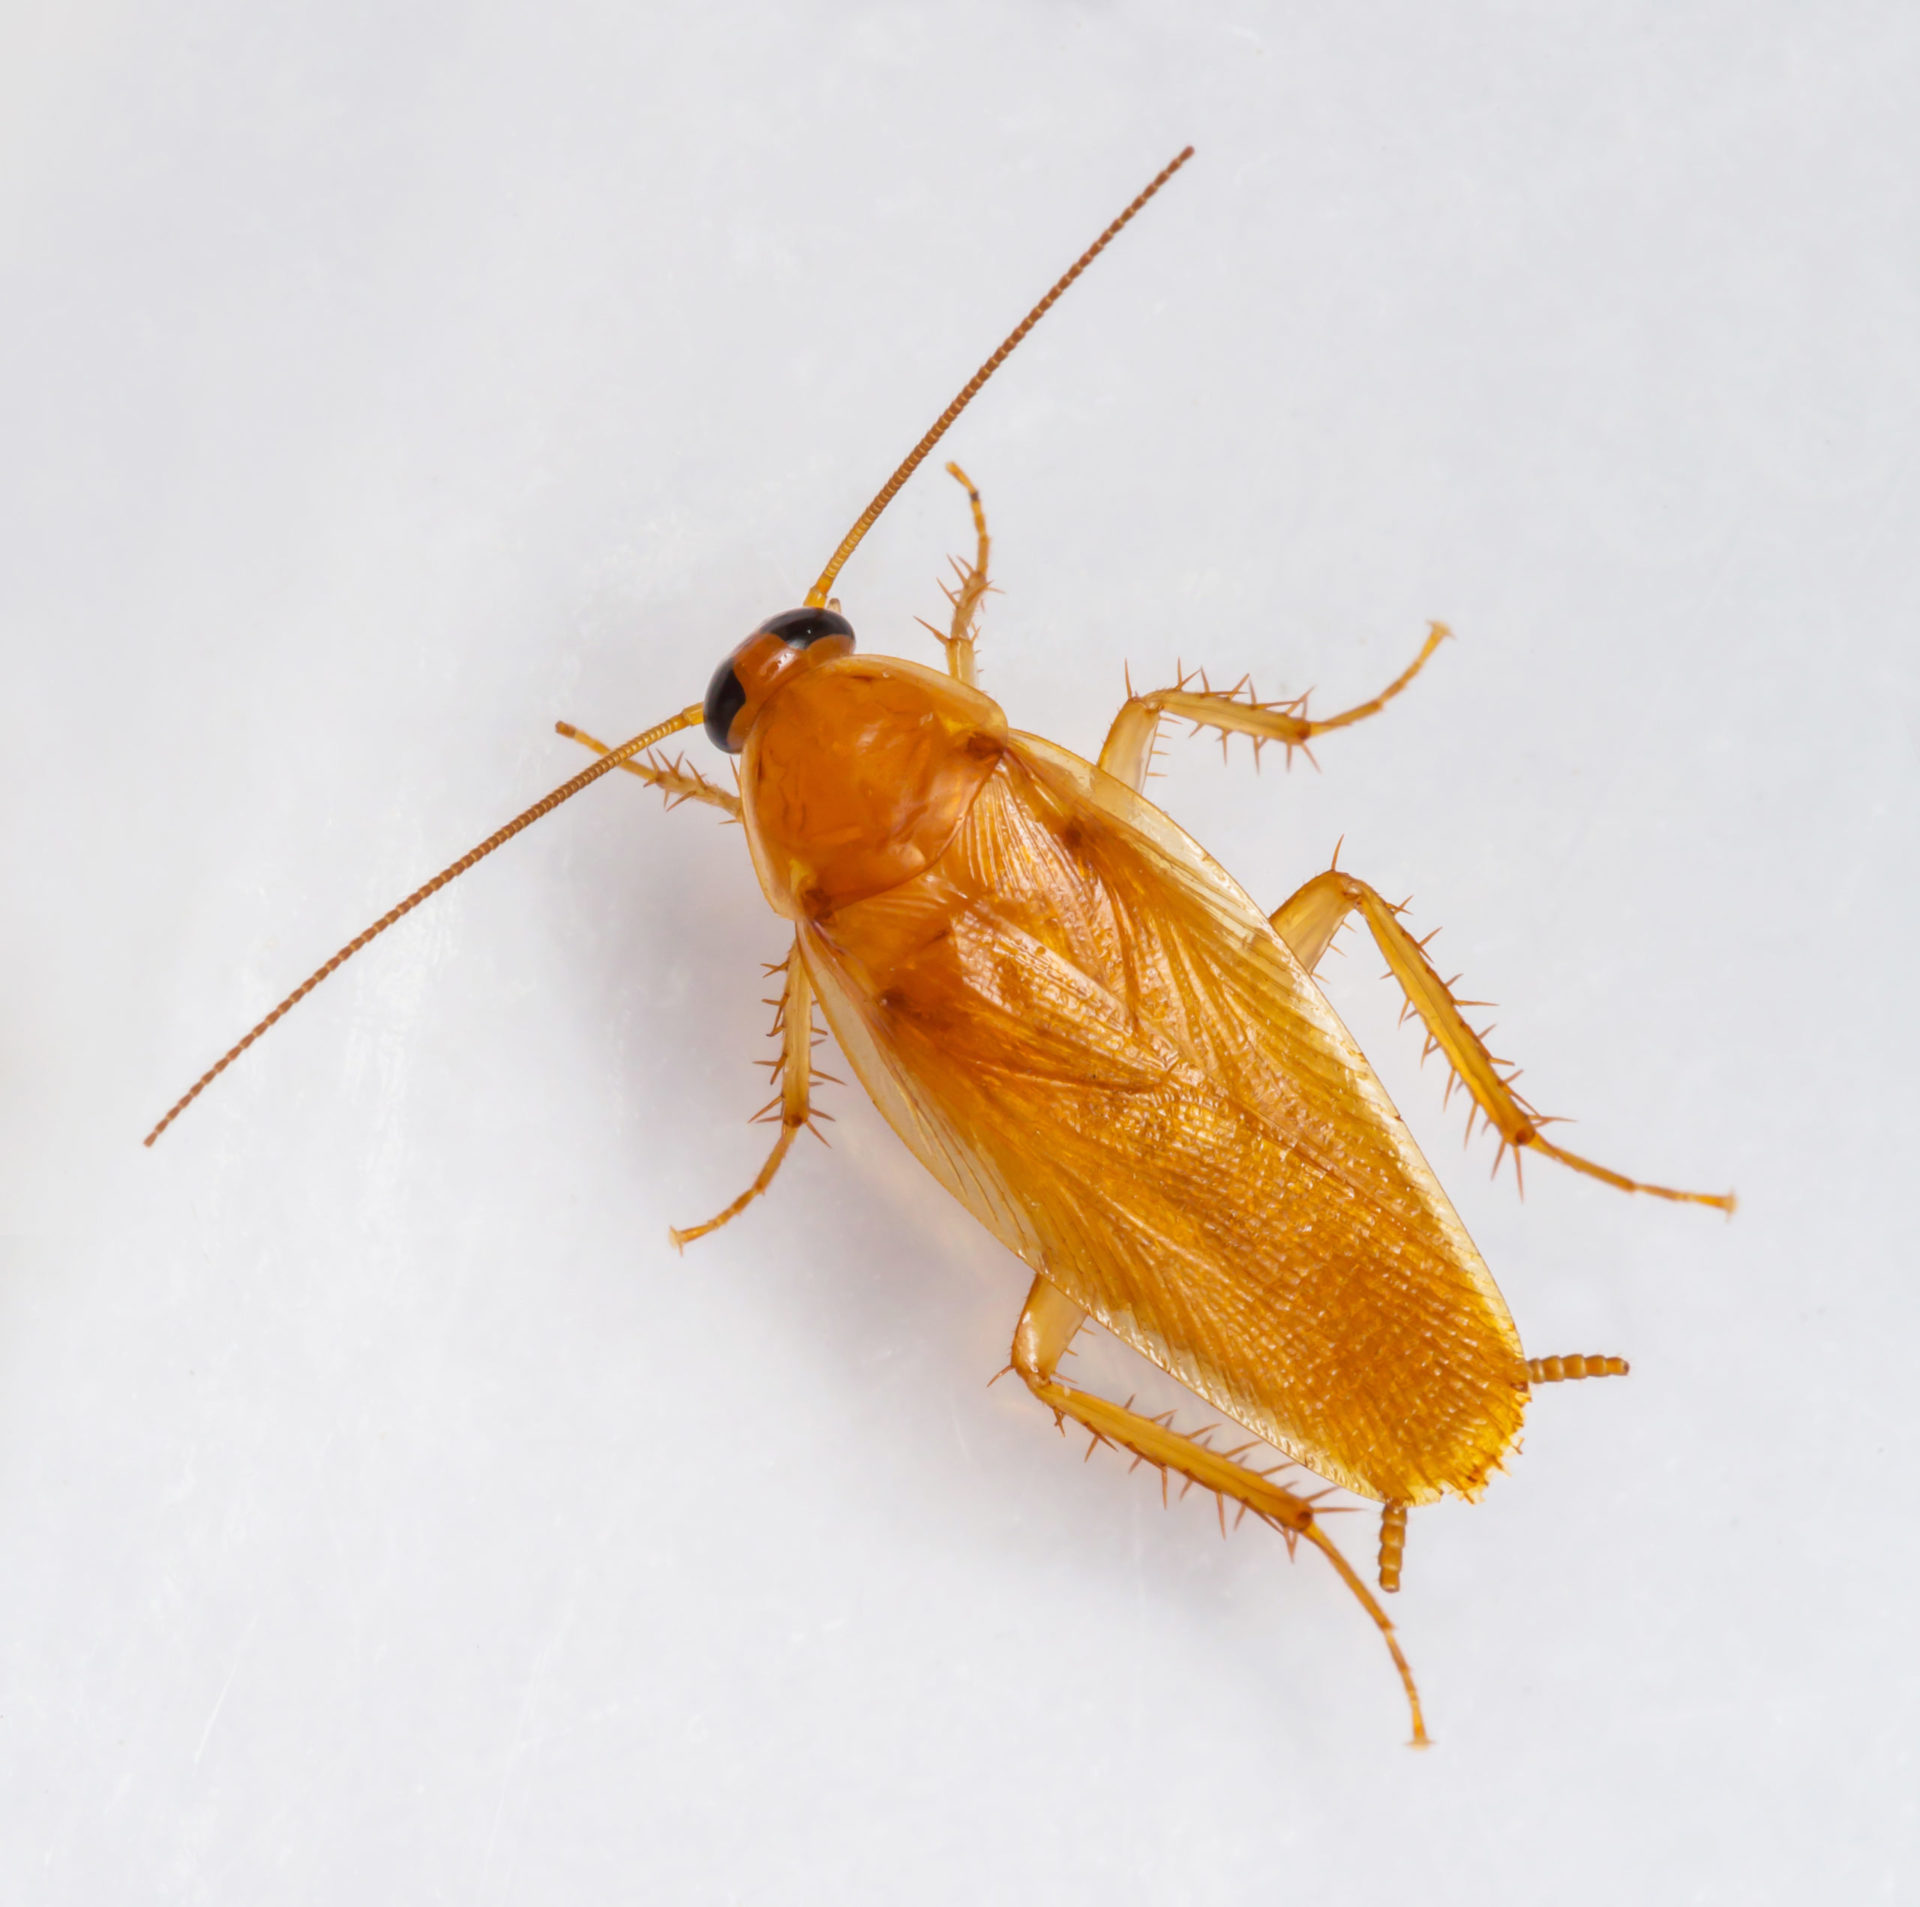 sinlge smooth cockroach